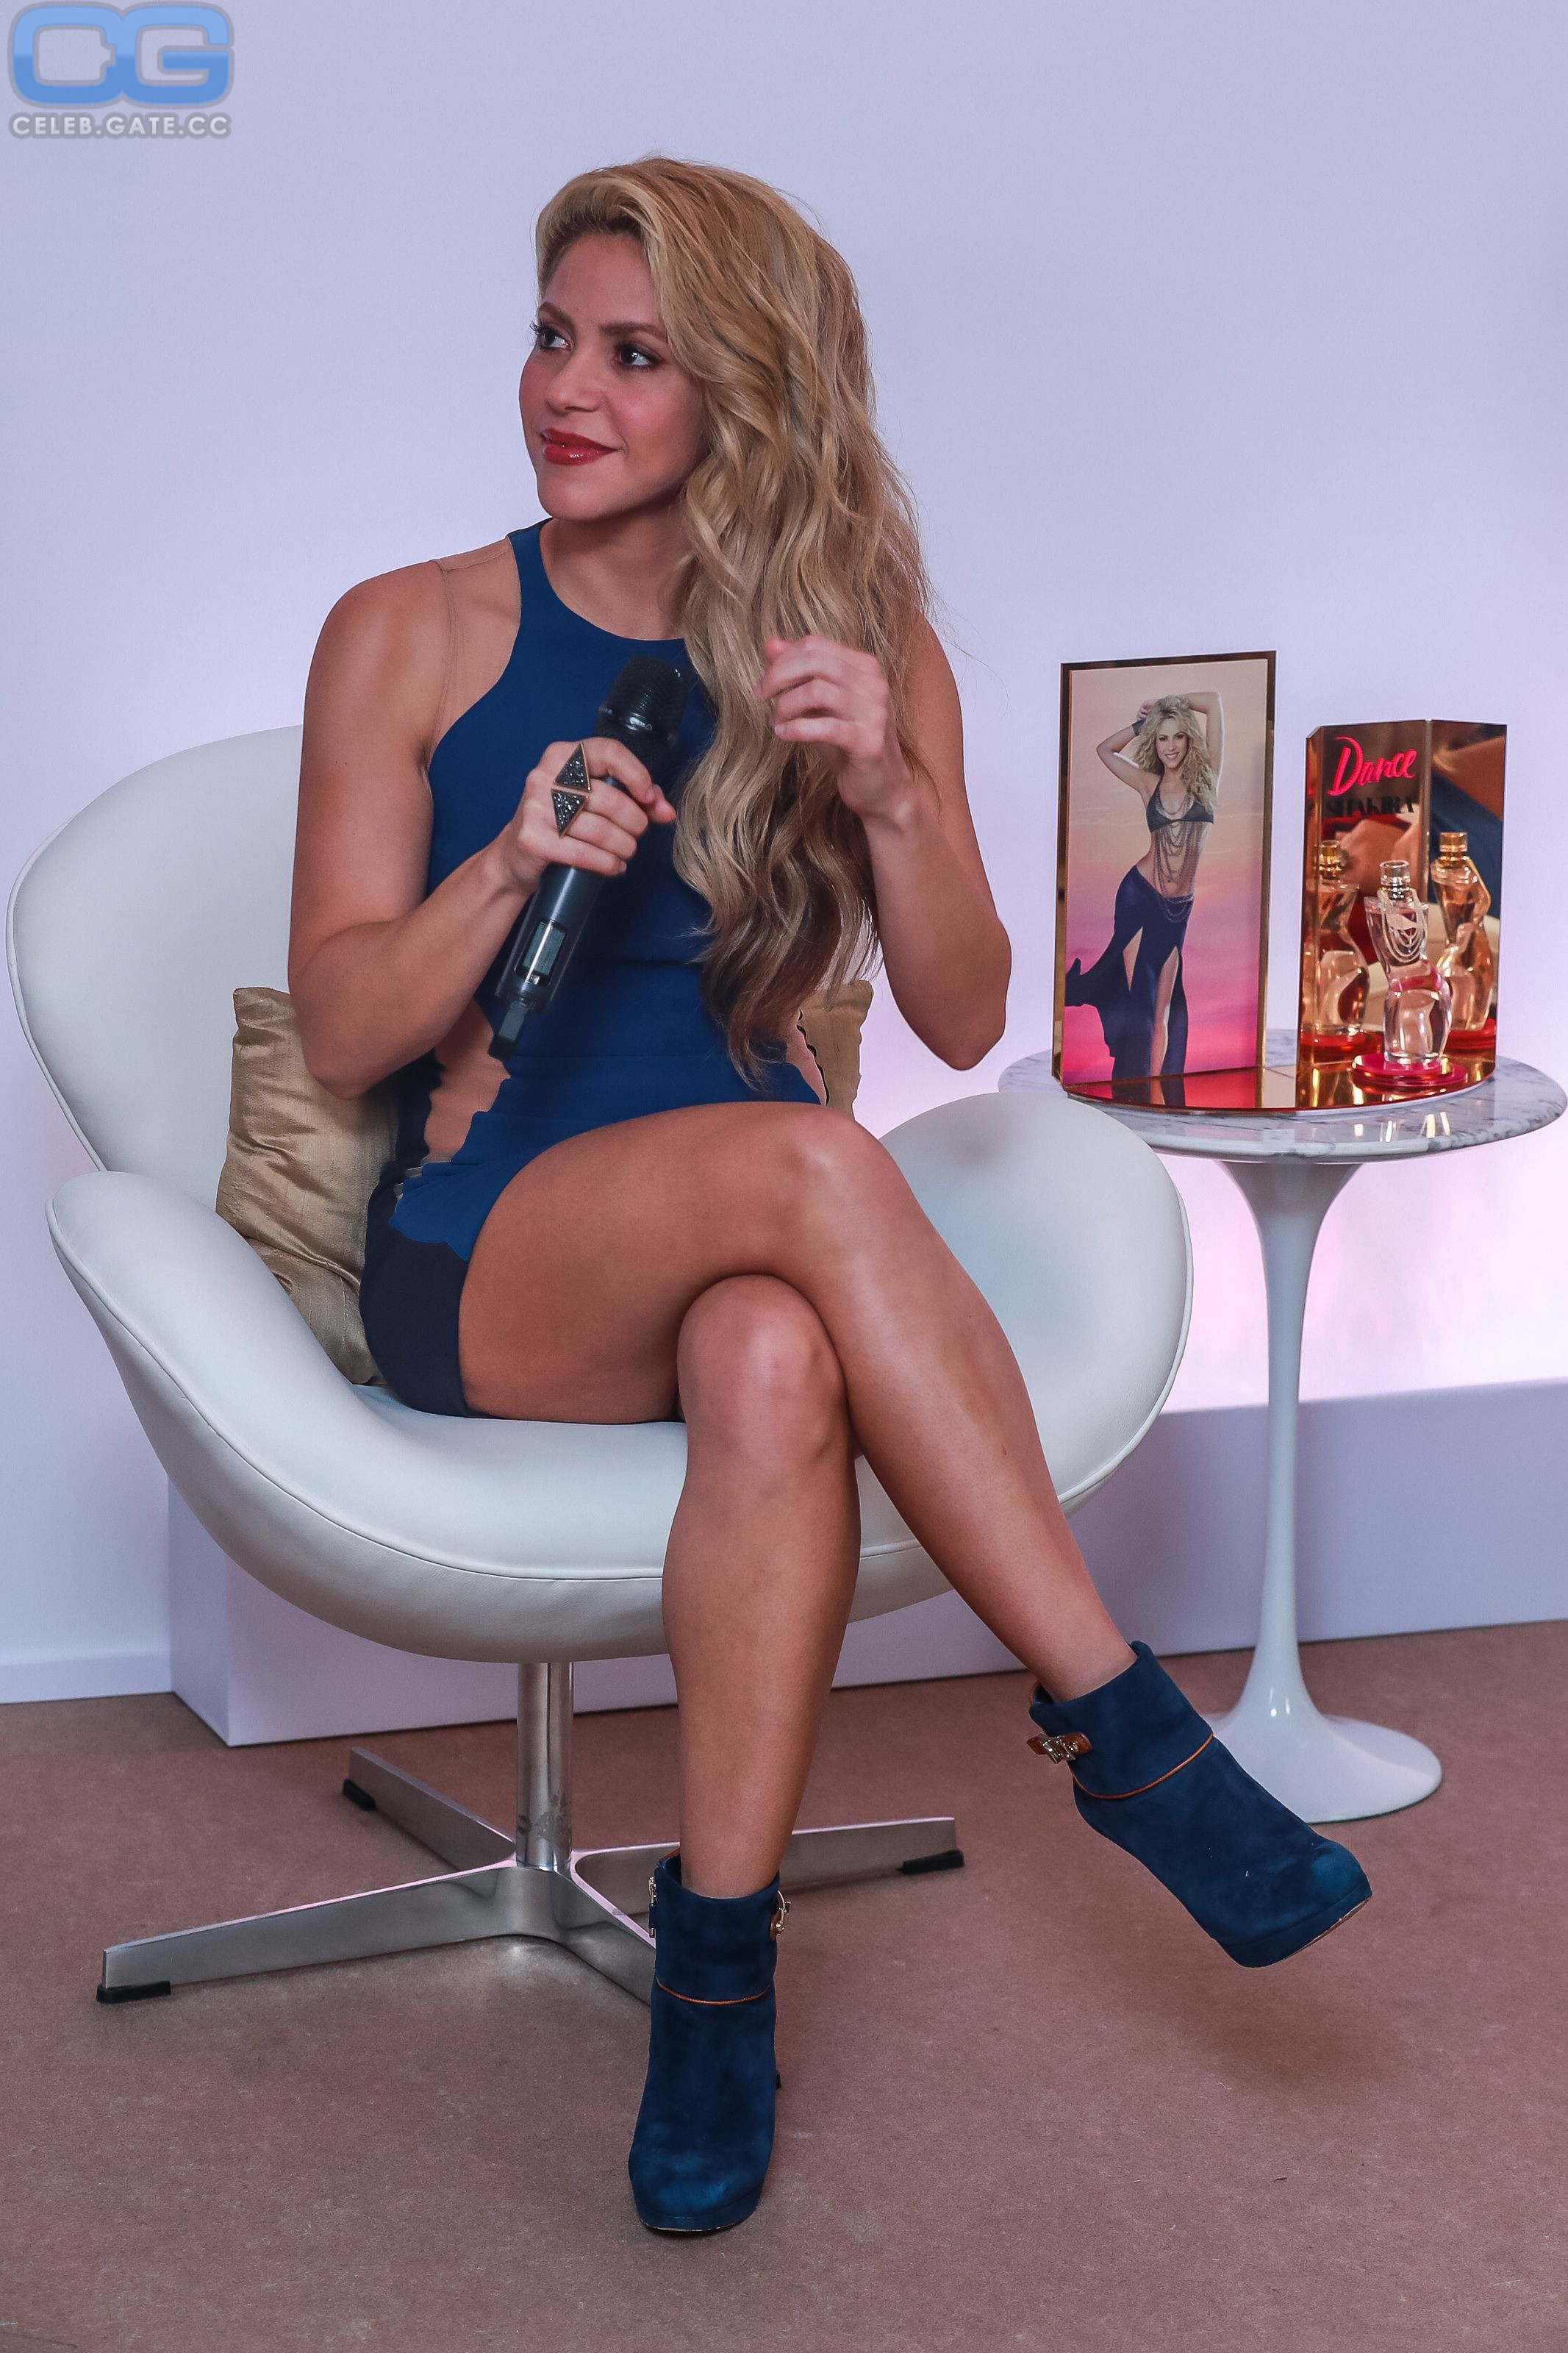 The fappening shakira Fappening 2021